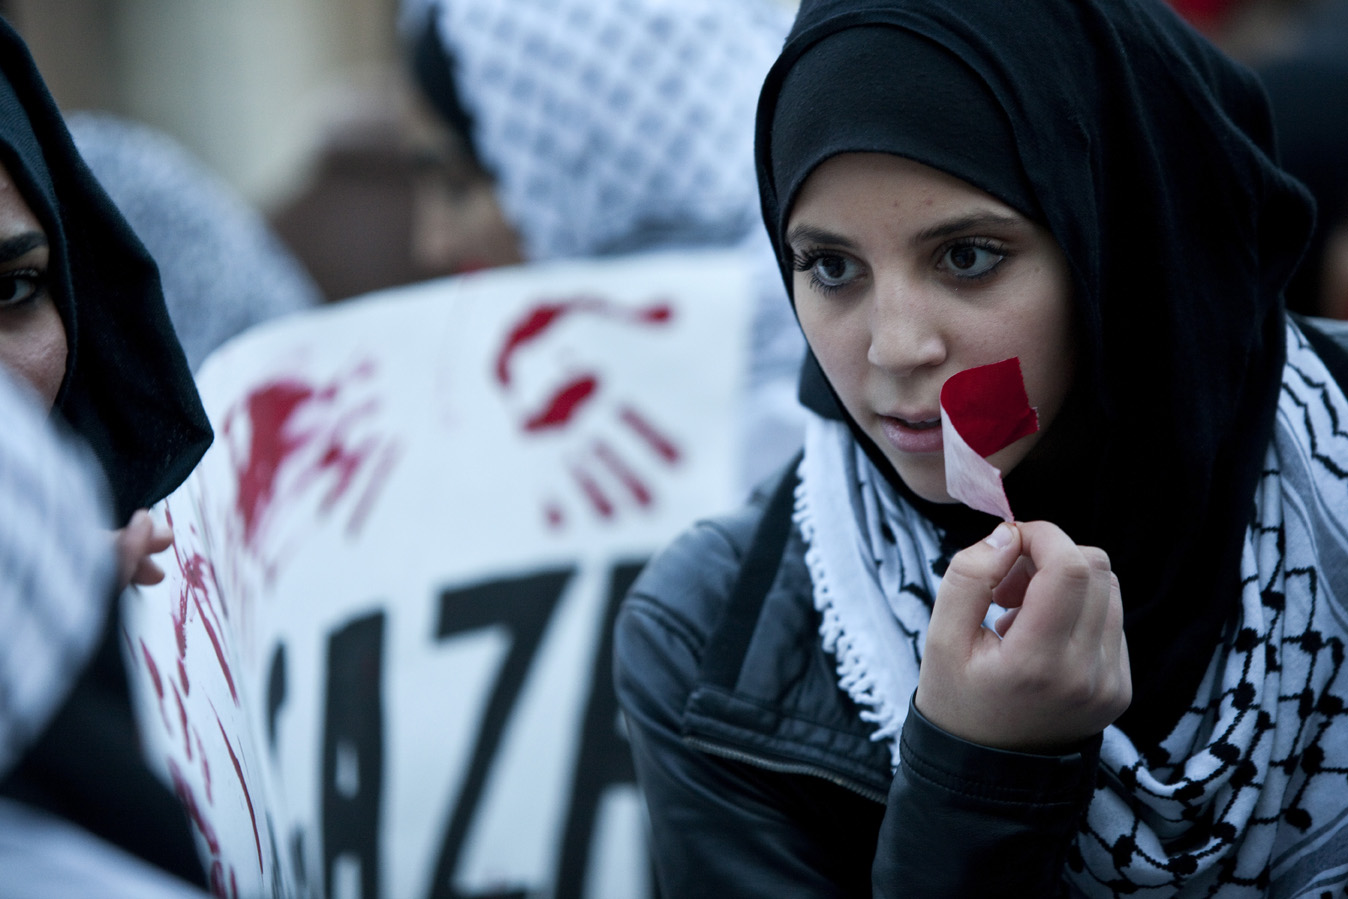 Palestinian protestors peacefully demonstrate in solidarity with Gaza.